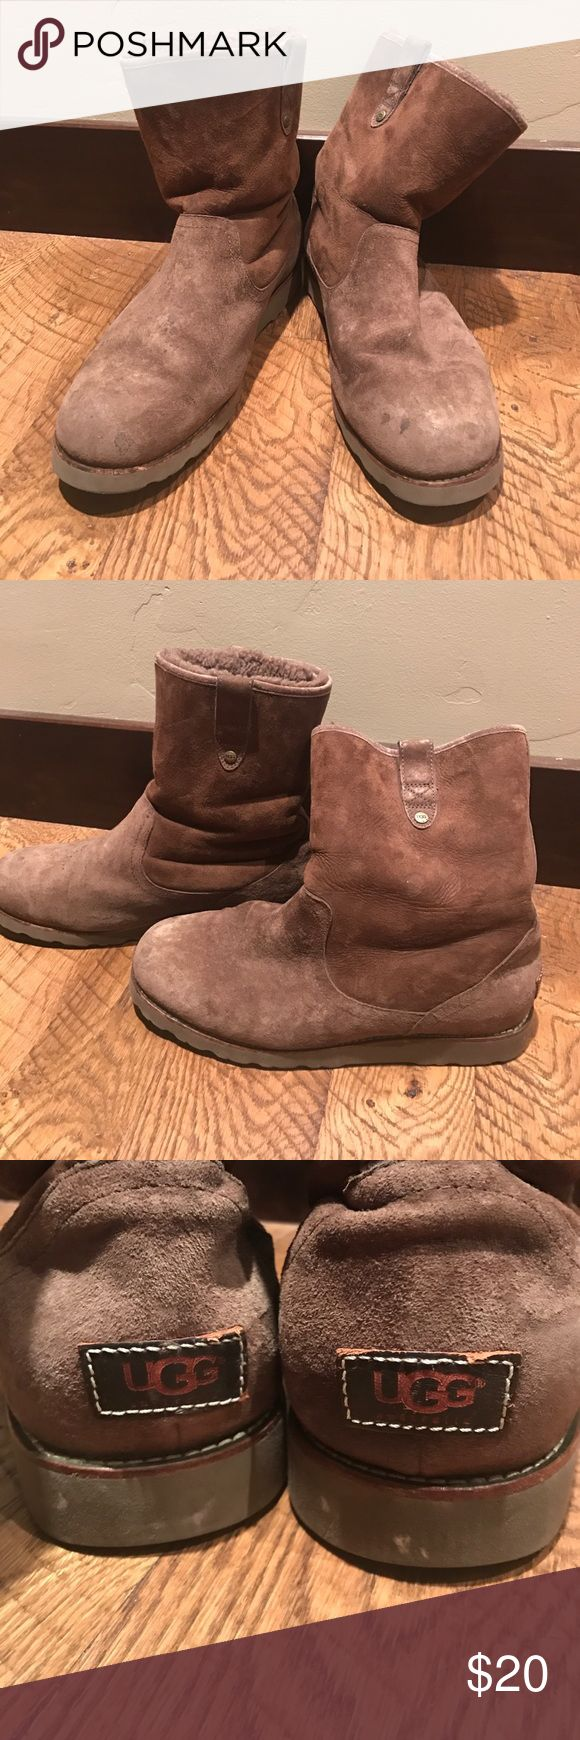 Uggs with Vibram sole Uggs with Vibram sole. I don't know the exact size, but they are 12.5 in long when measured from the bottom. Good used condition with lots of life left. Men's or women's UGG Shoes Winter & Rain Boots